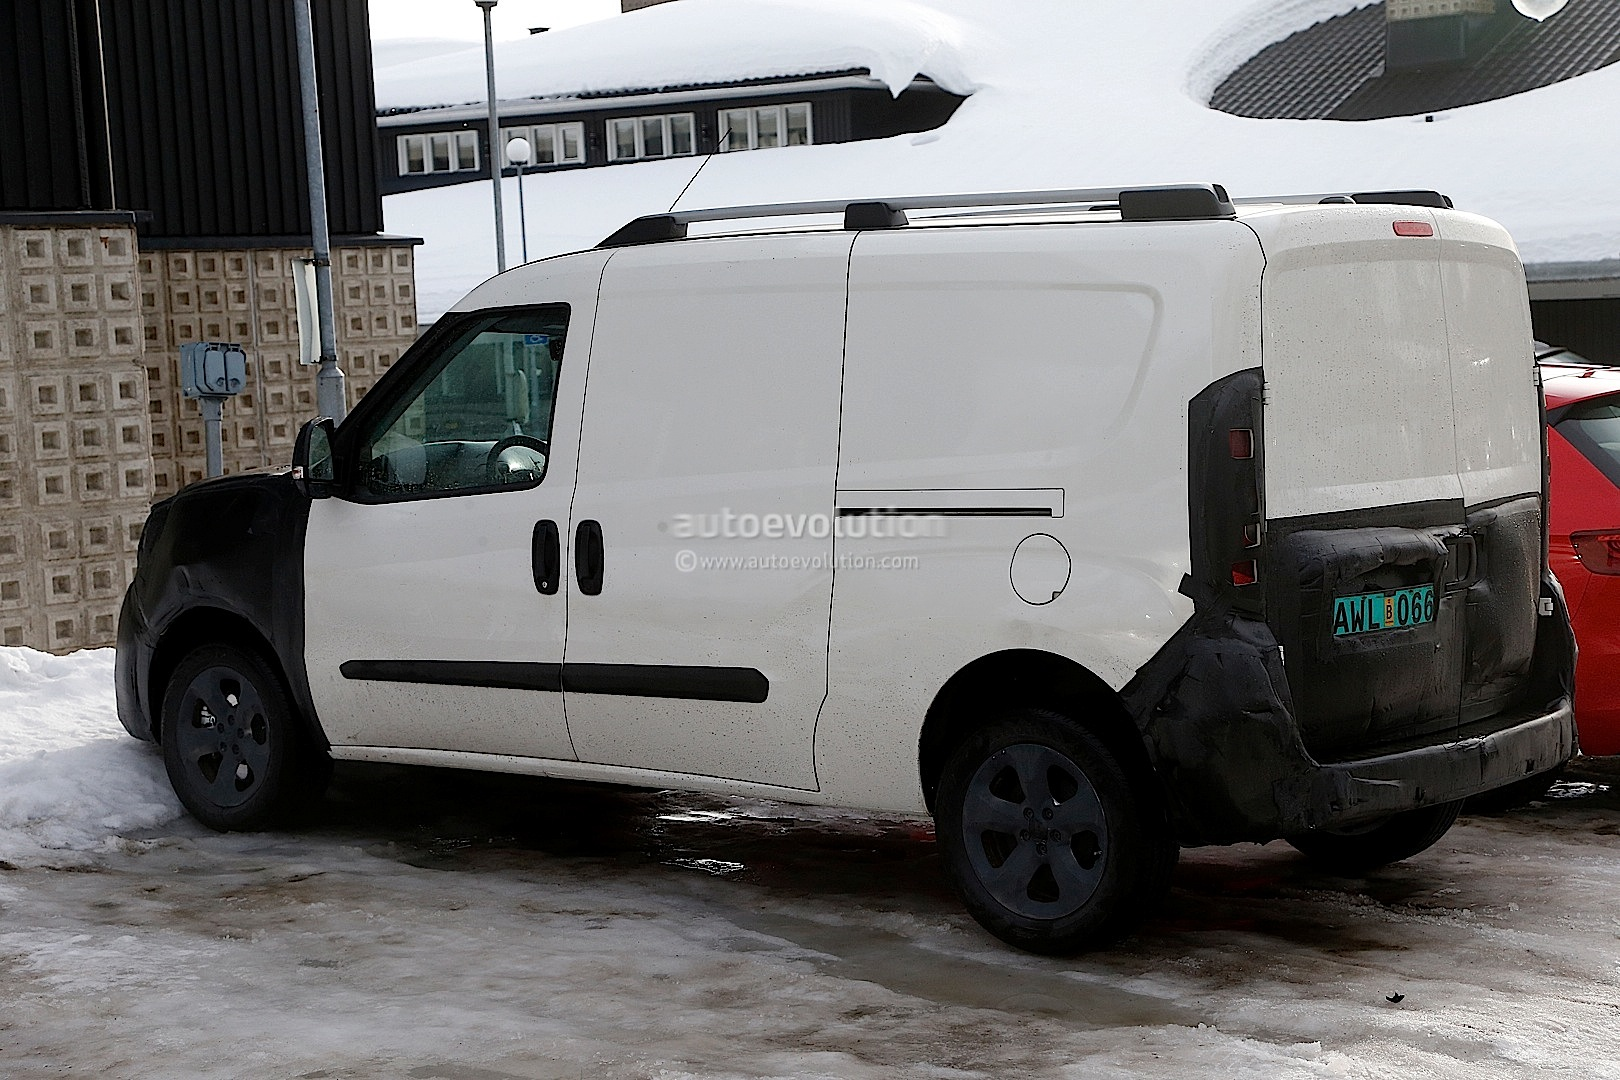 spyshots 2015 fiat doblo ram promaster city autoevolution. Black Bedroom Furniture Sets. Home Design Ideas